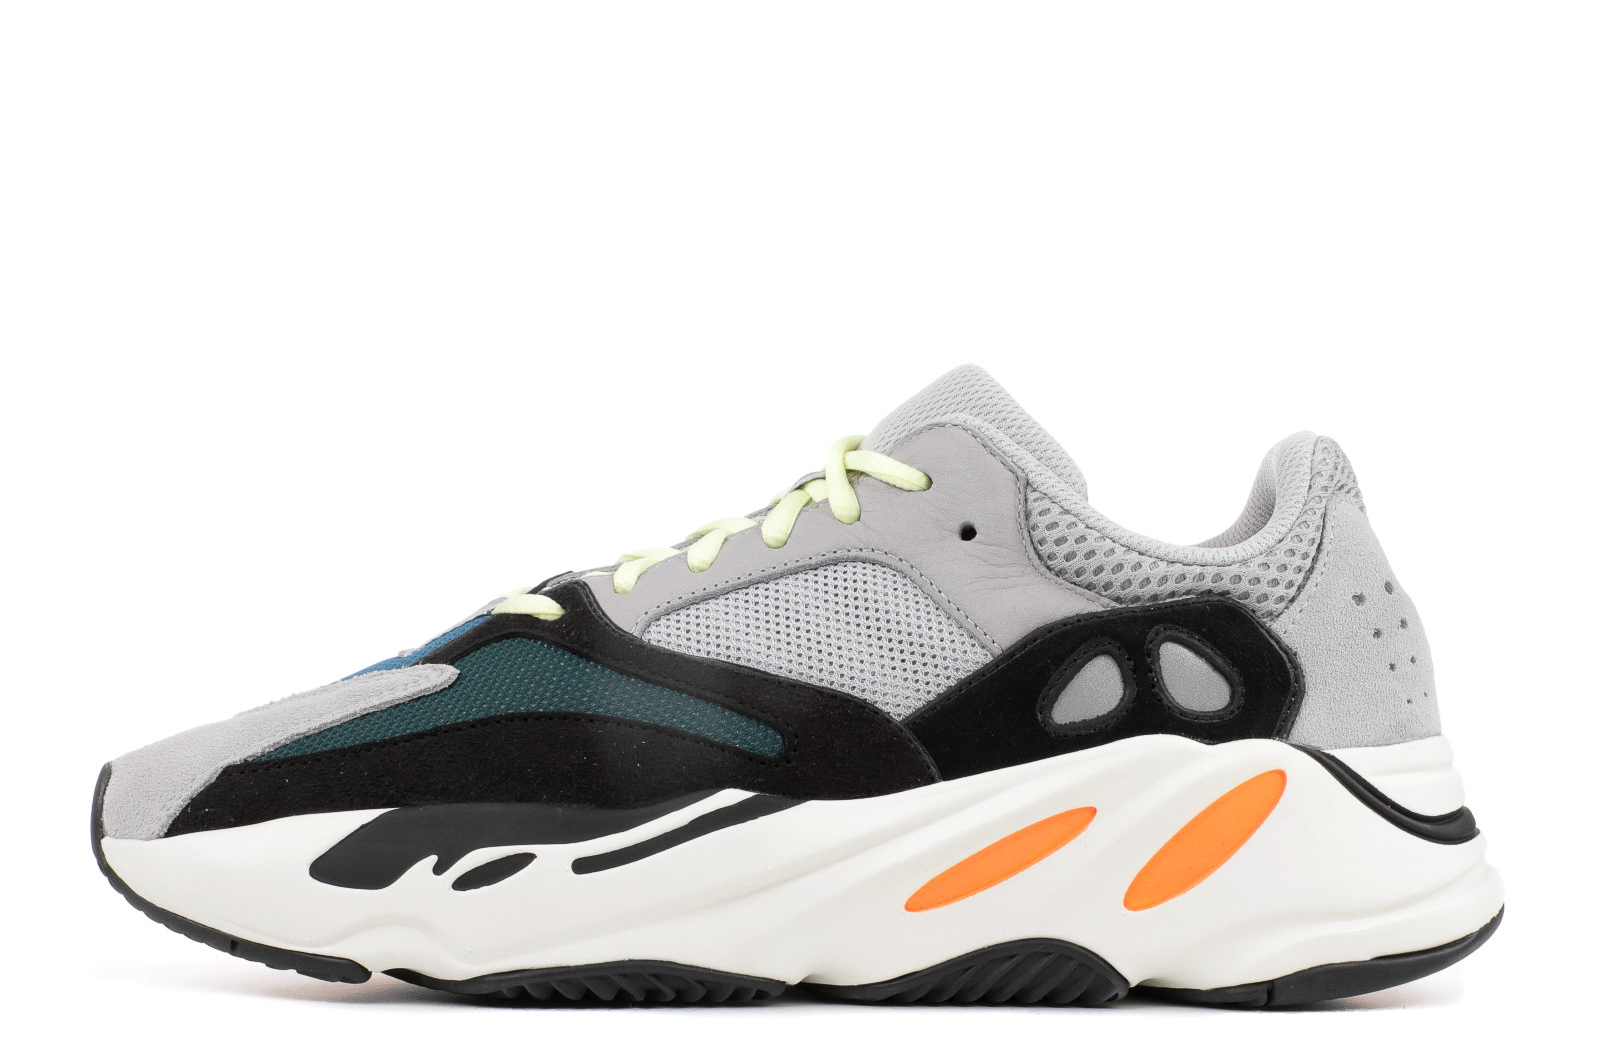 "YEEZY BOOST 700 OG ""WAVE RUNNER"" B75571 - Click Image to Close"